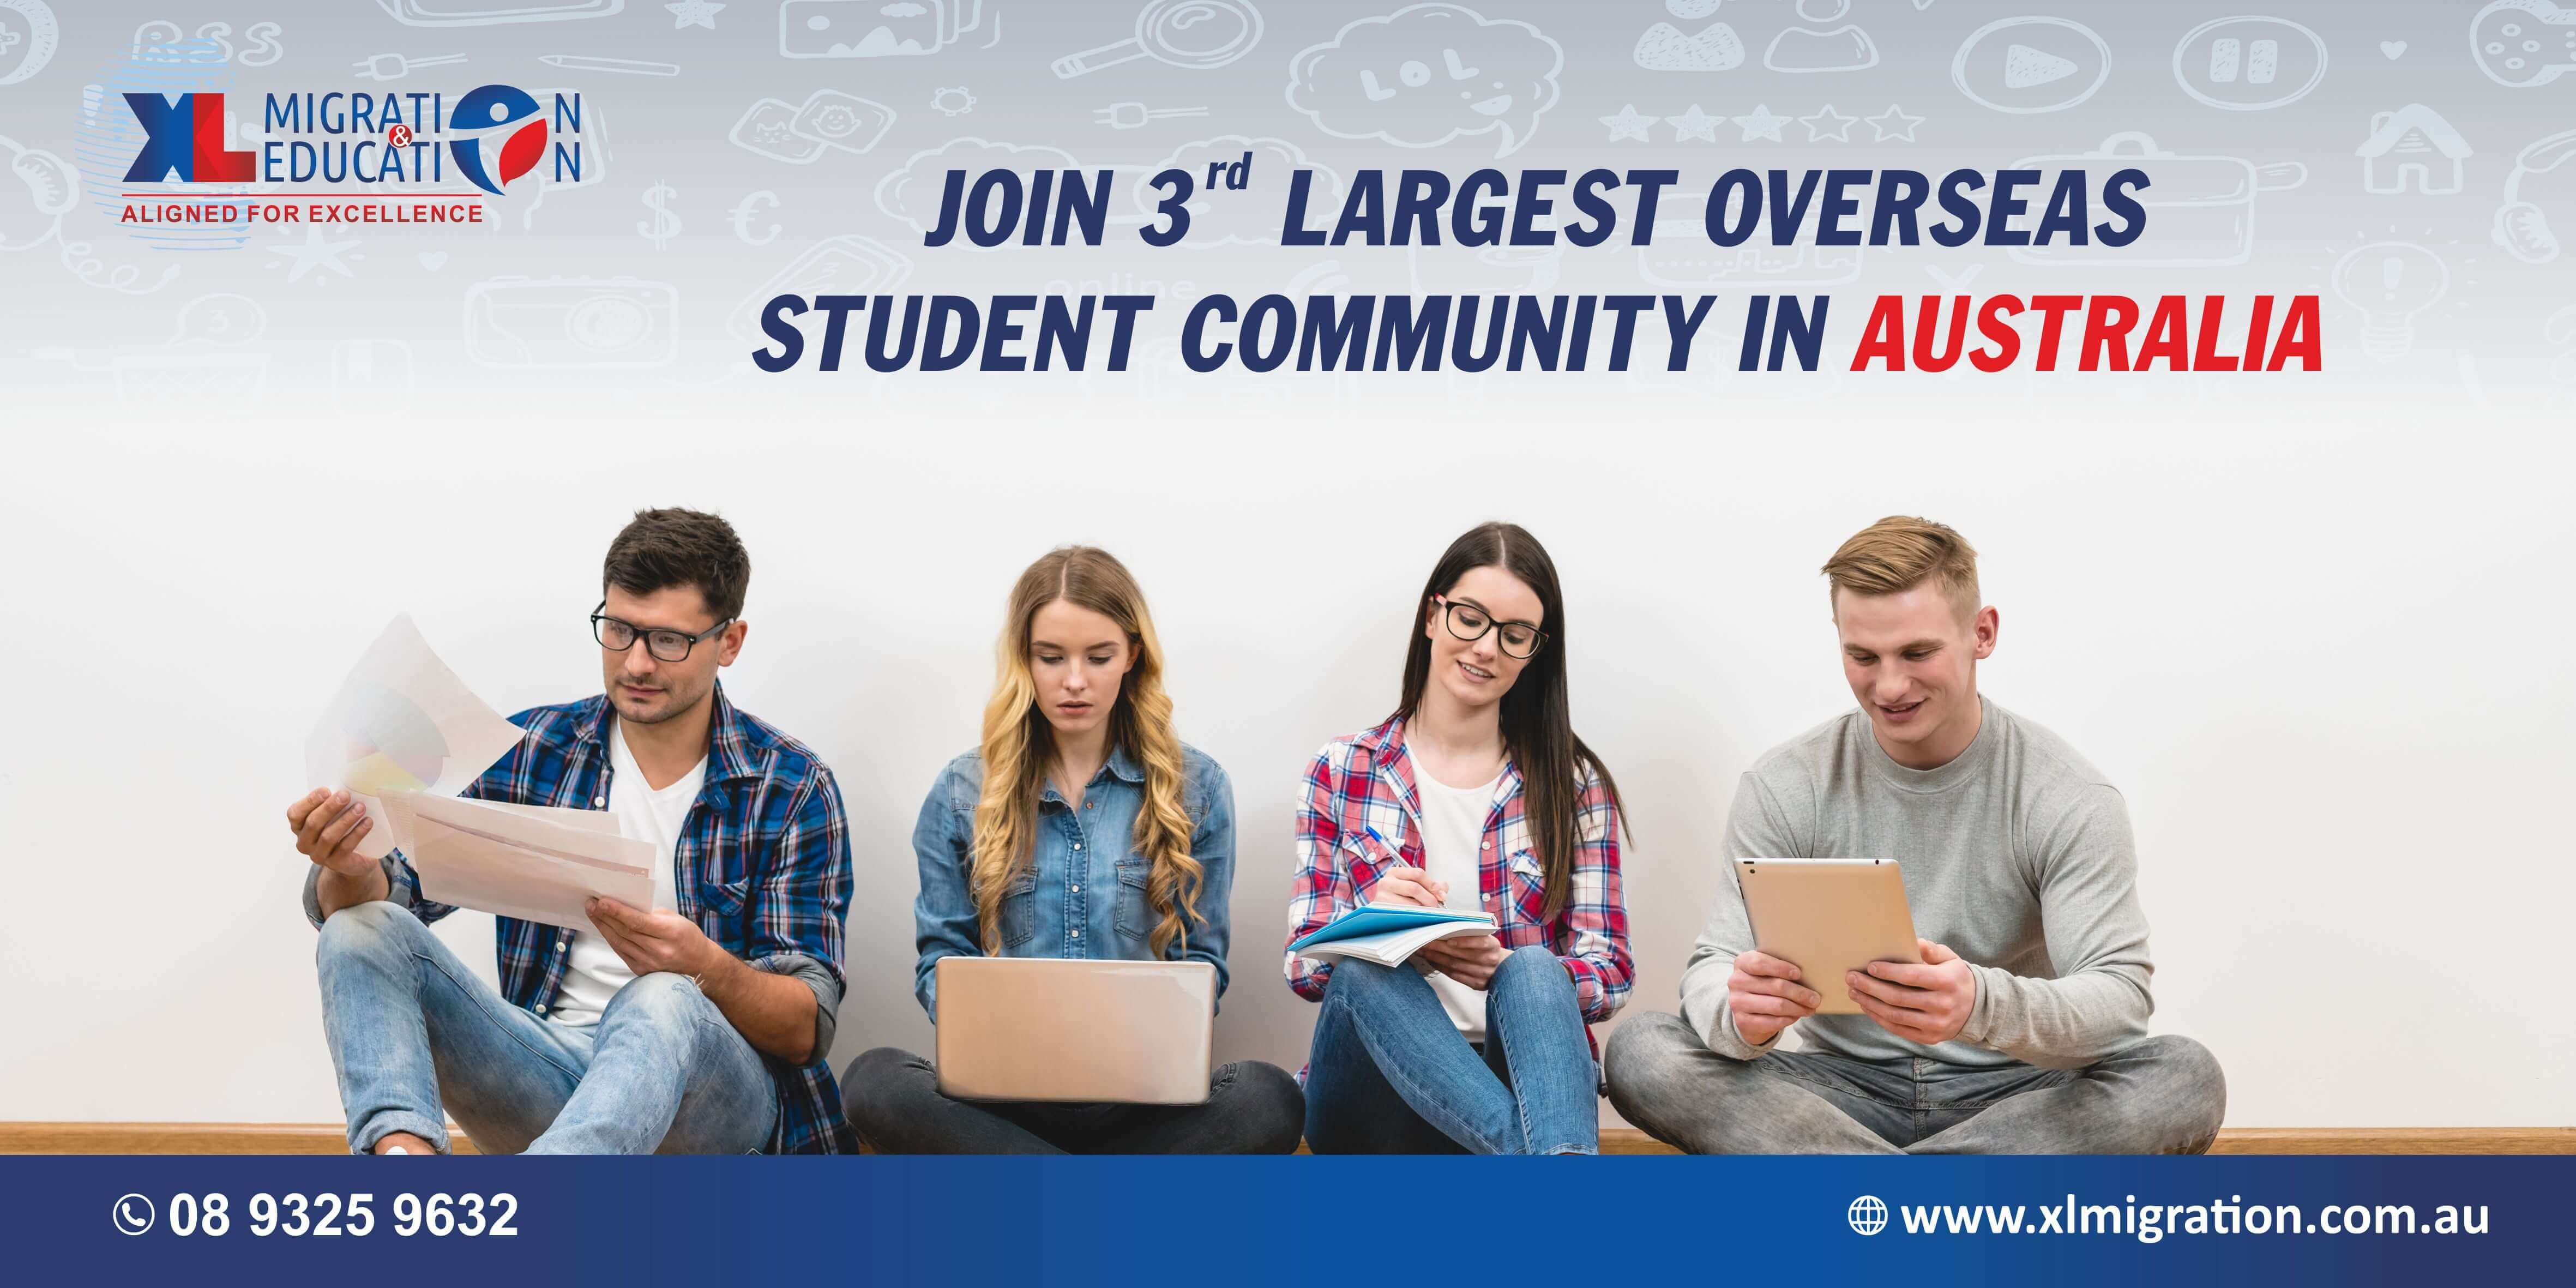 Join 3rd largest overseas student community in Australia